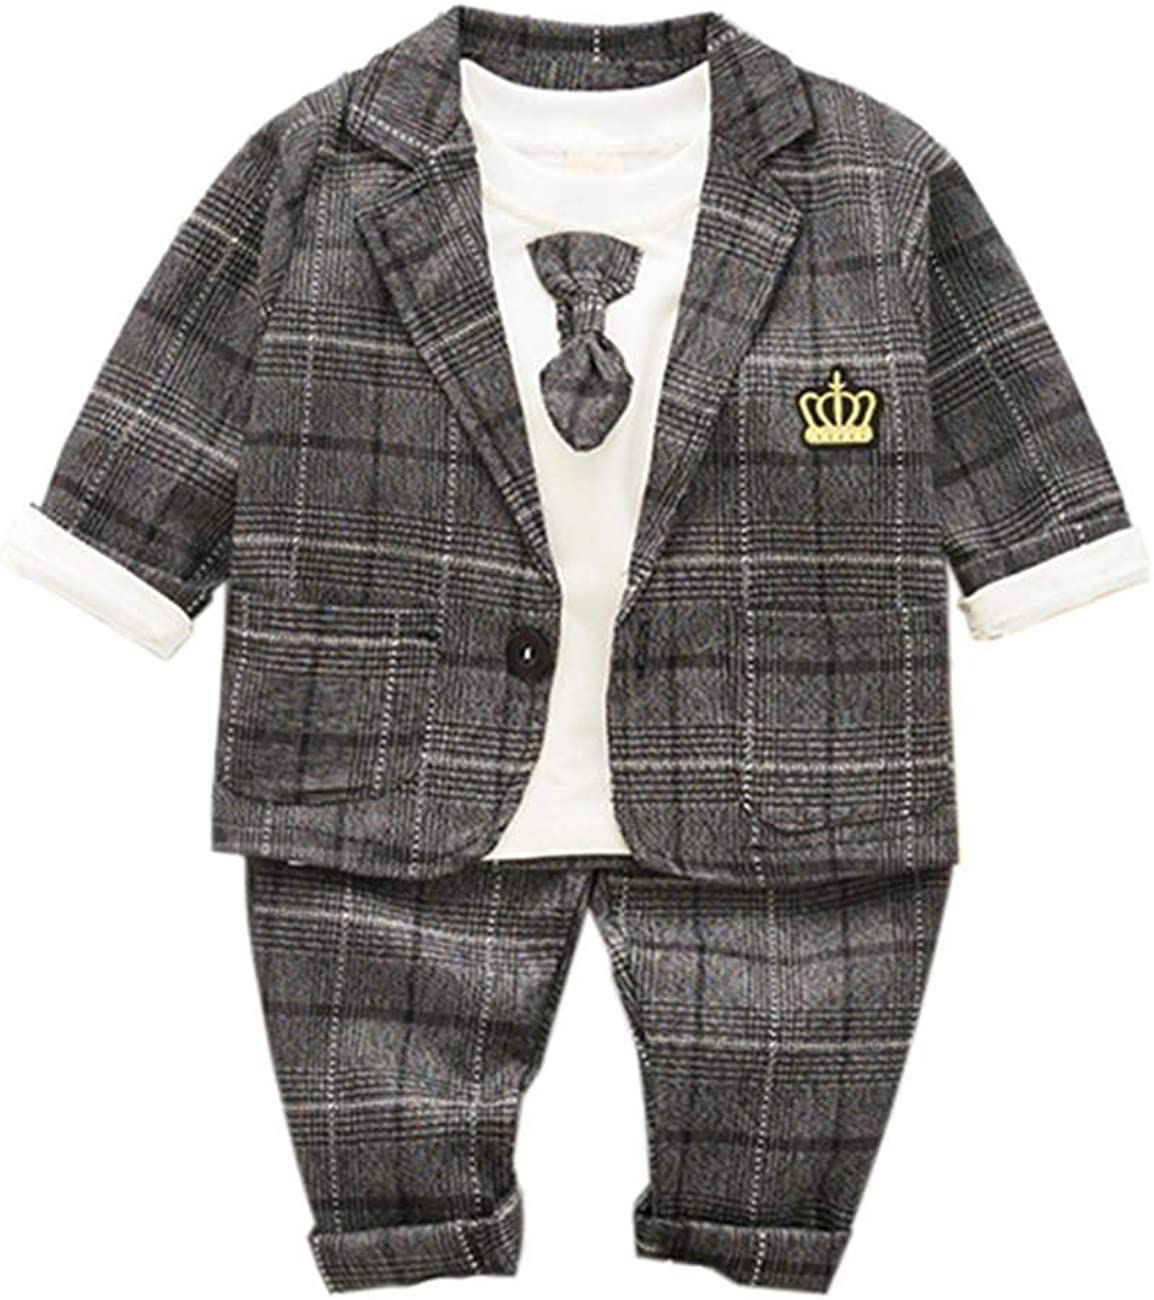 KUKEONON Toddler Baby Boys Suits 3Pcs Formal Wear Tuxedos Outfits